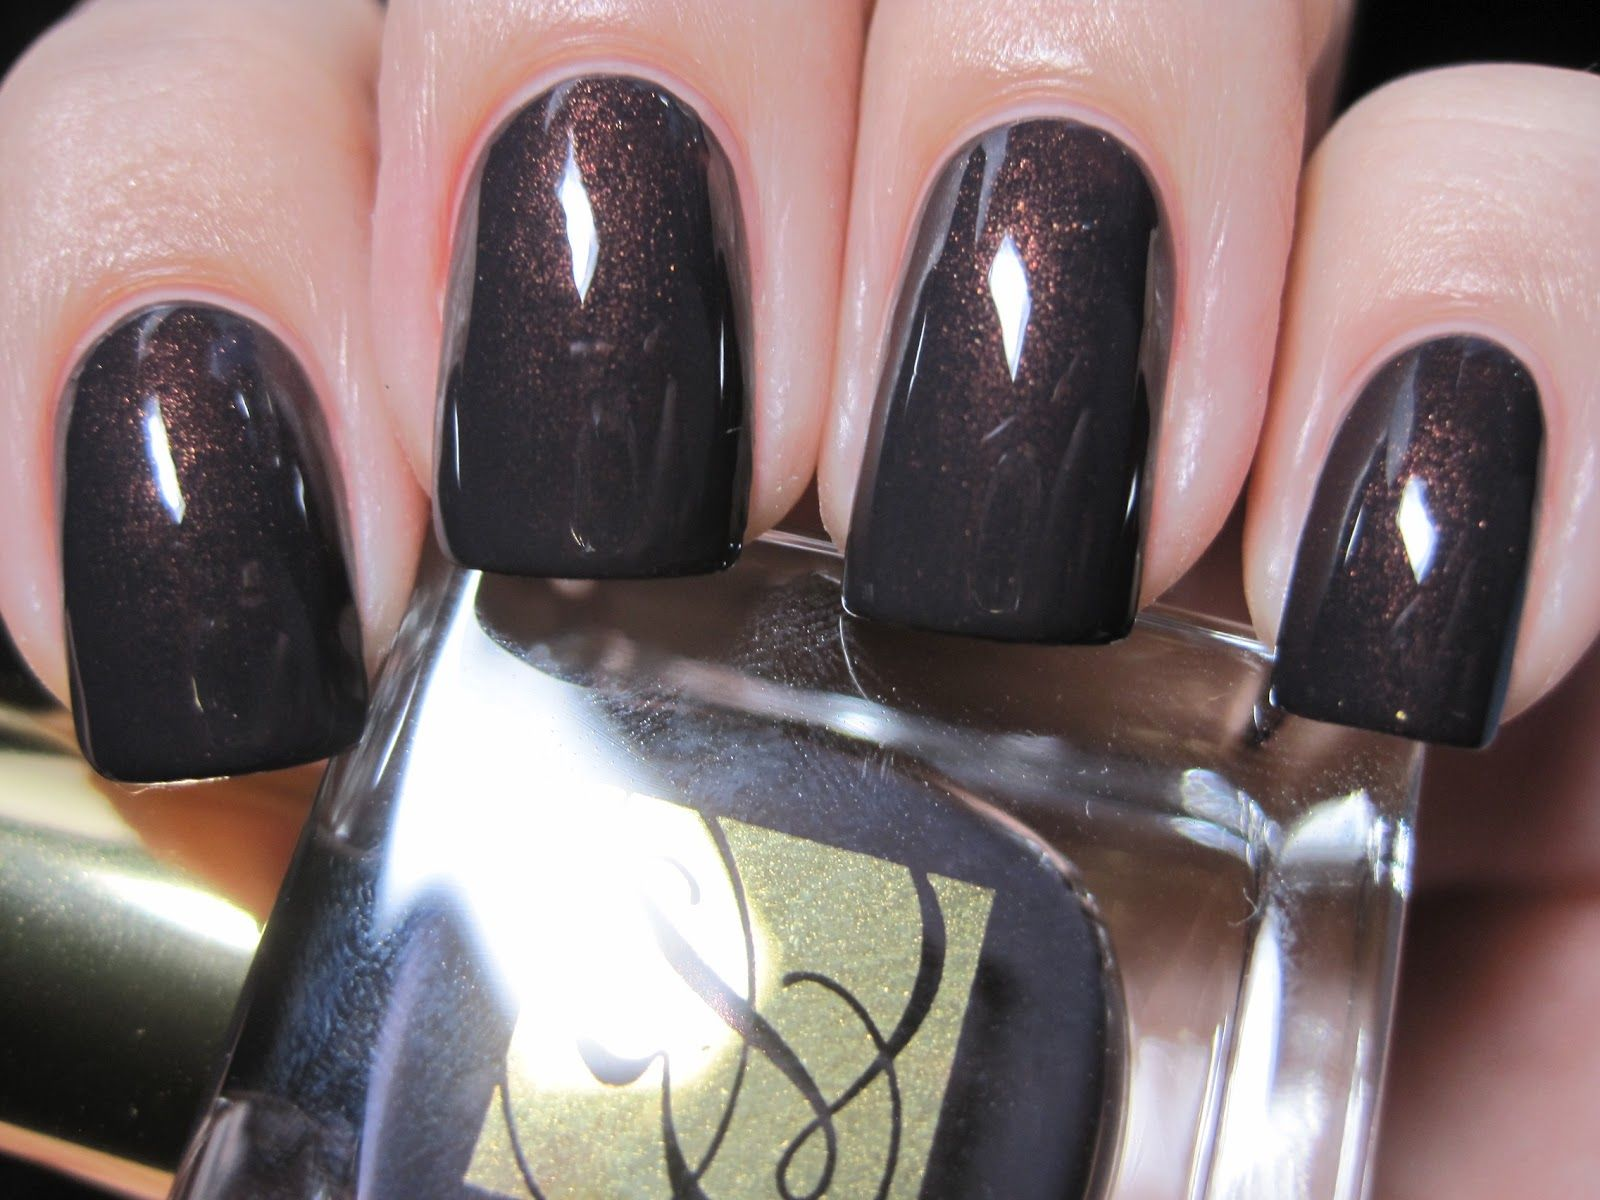 estee lauder nail polish - molten lava - dark with a barely there ...